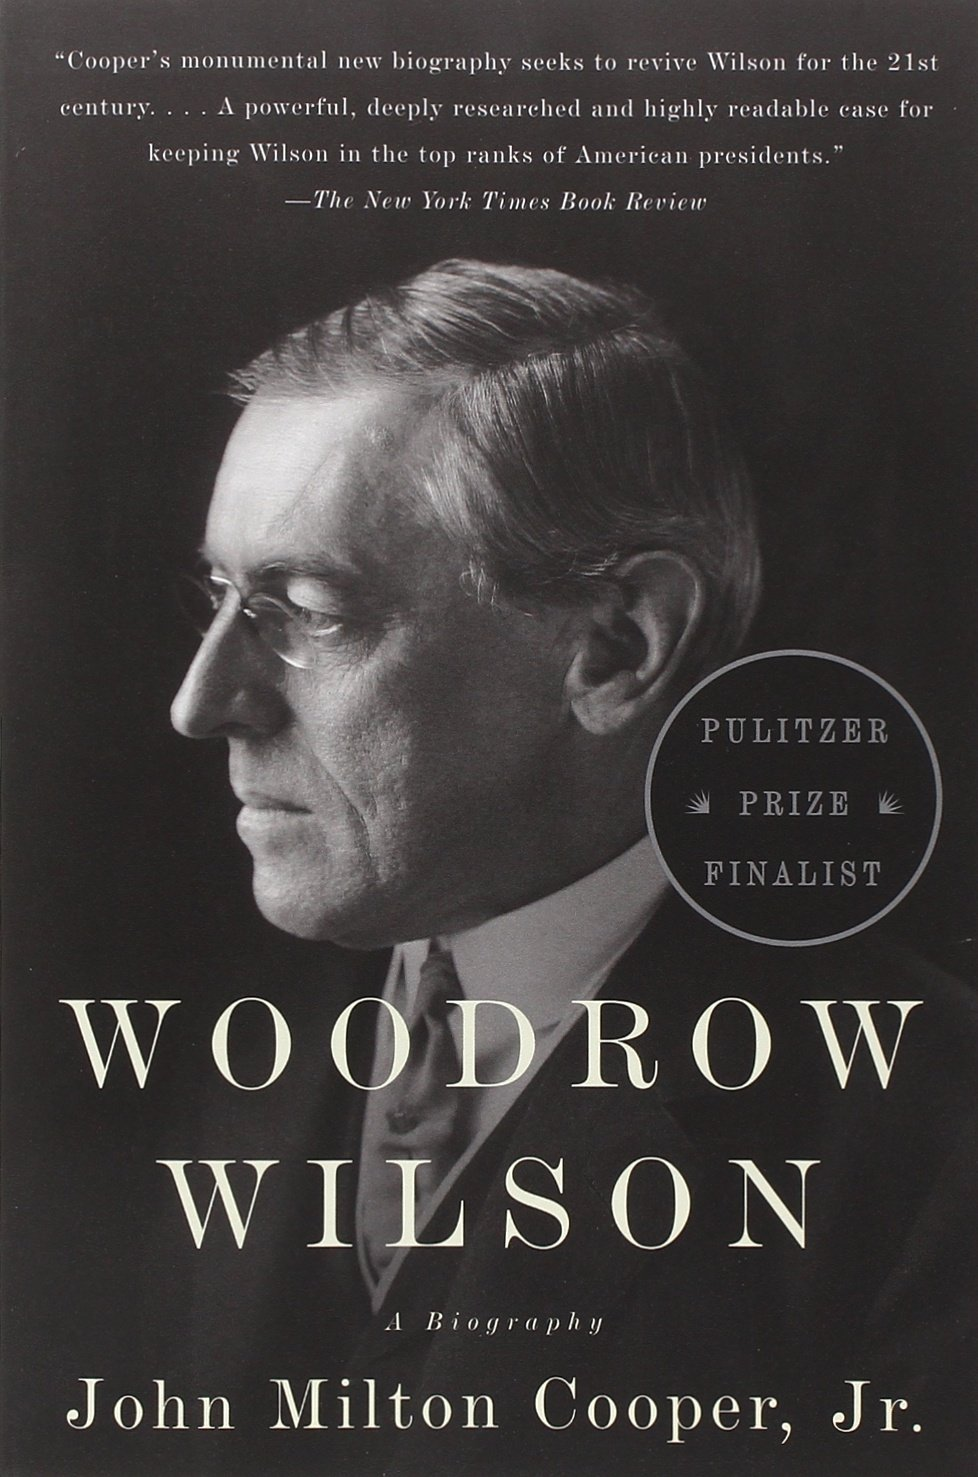 Amazon.com: Woodrow Wilson: A Biography (9780307277909): John Milton Cooper  Jr.: Books Part 88